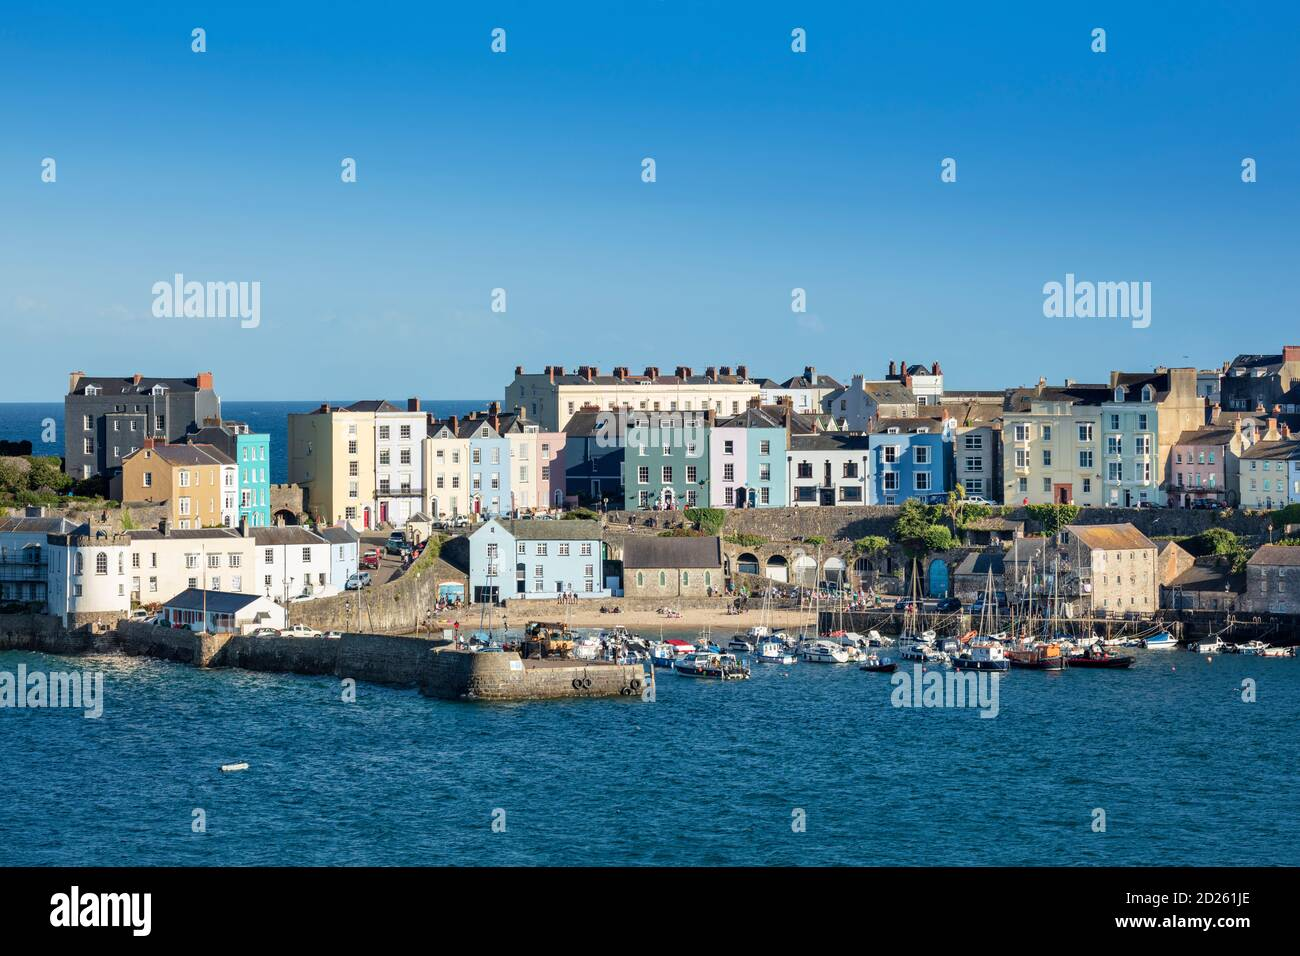 Tenby Town and harbour, summer day, blue sky, Pembrokeshire resort, Carmarthen Bay, Bristol Channel, seaside, Wales Stock Photo